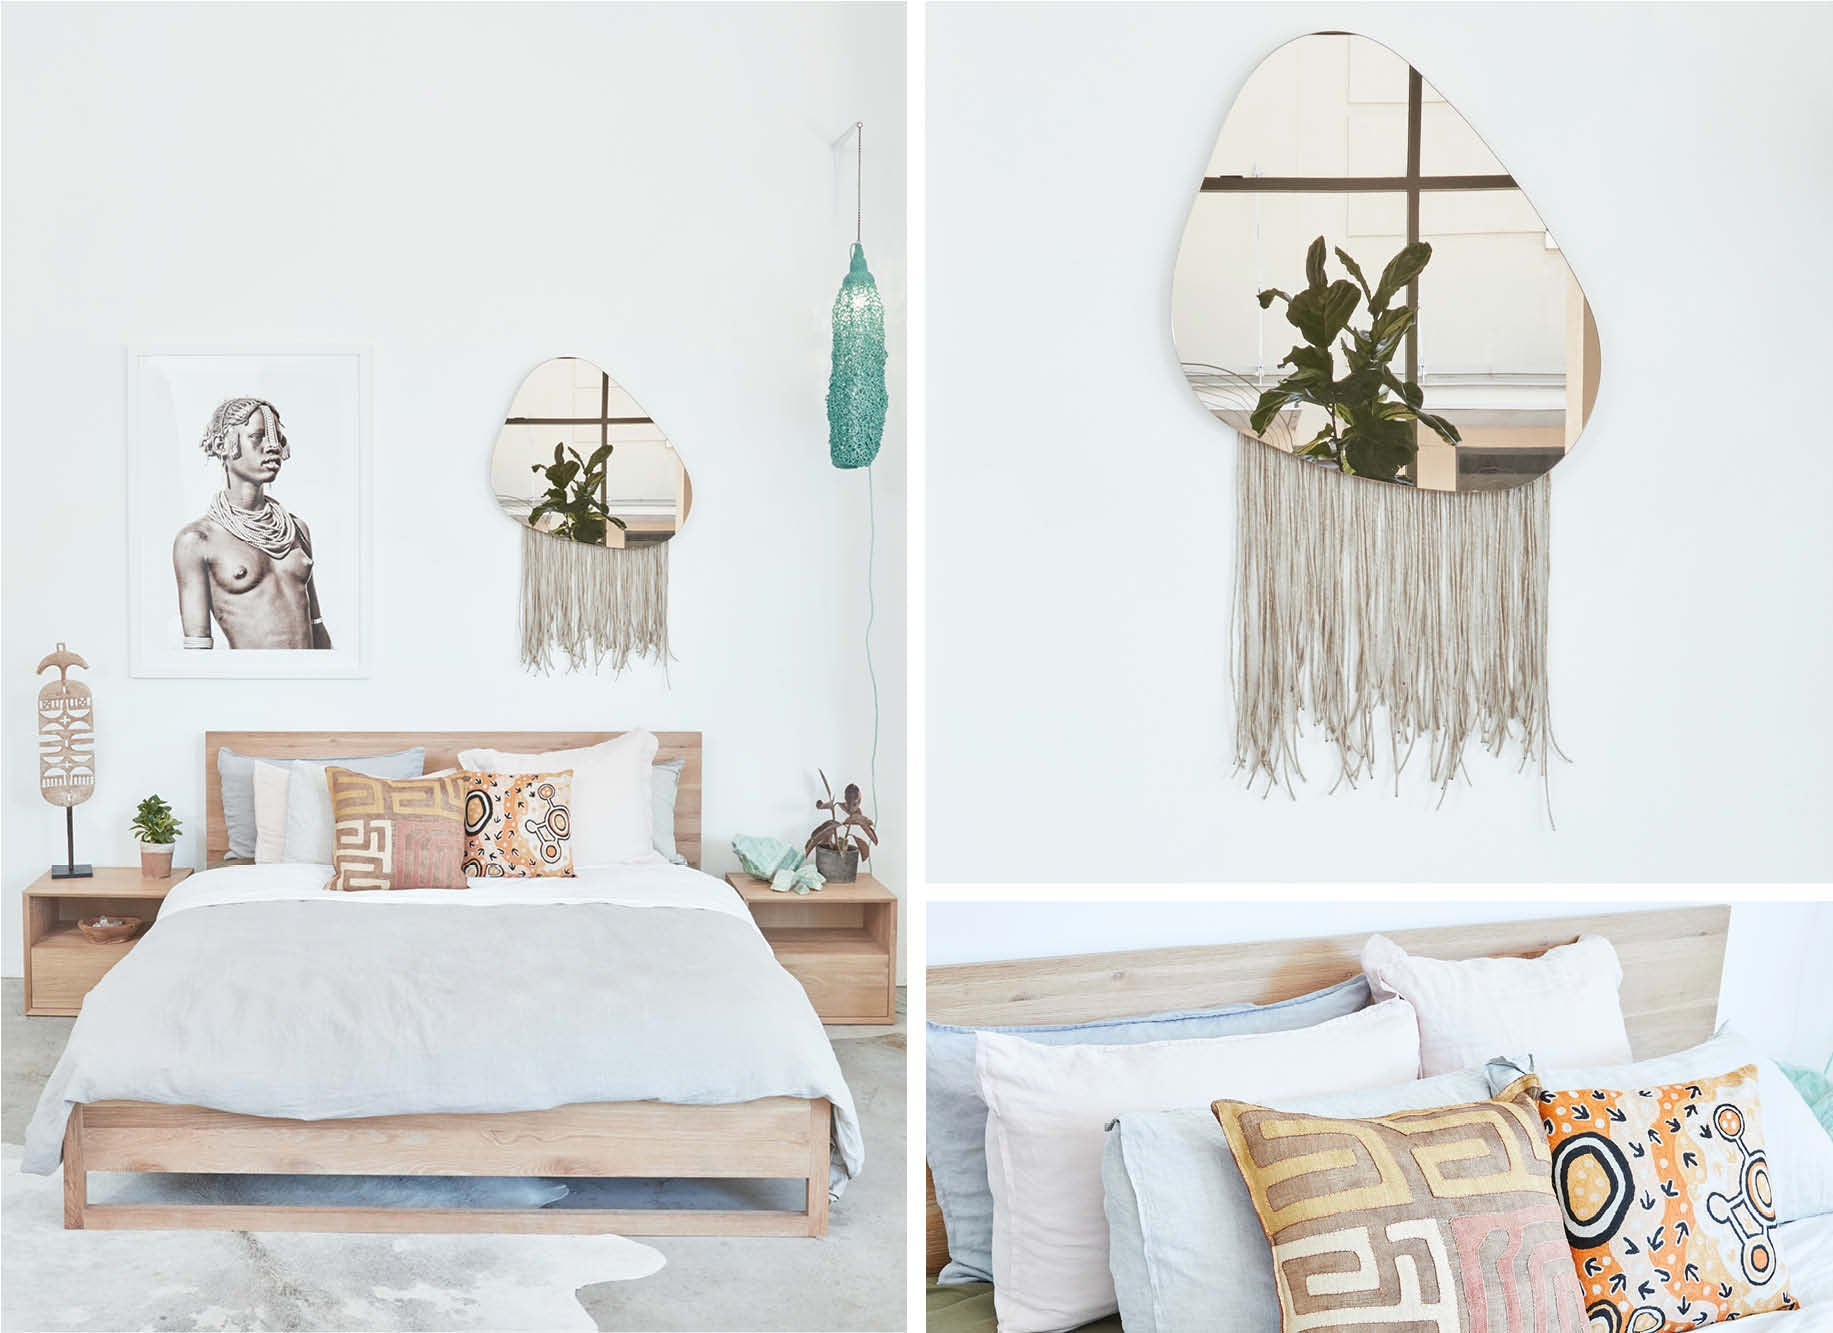 BEDROOM STYLE INSPIRATION FOR SUMMER